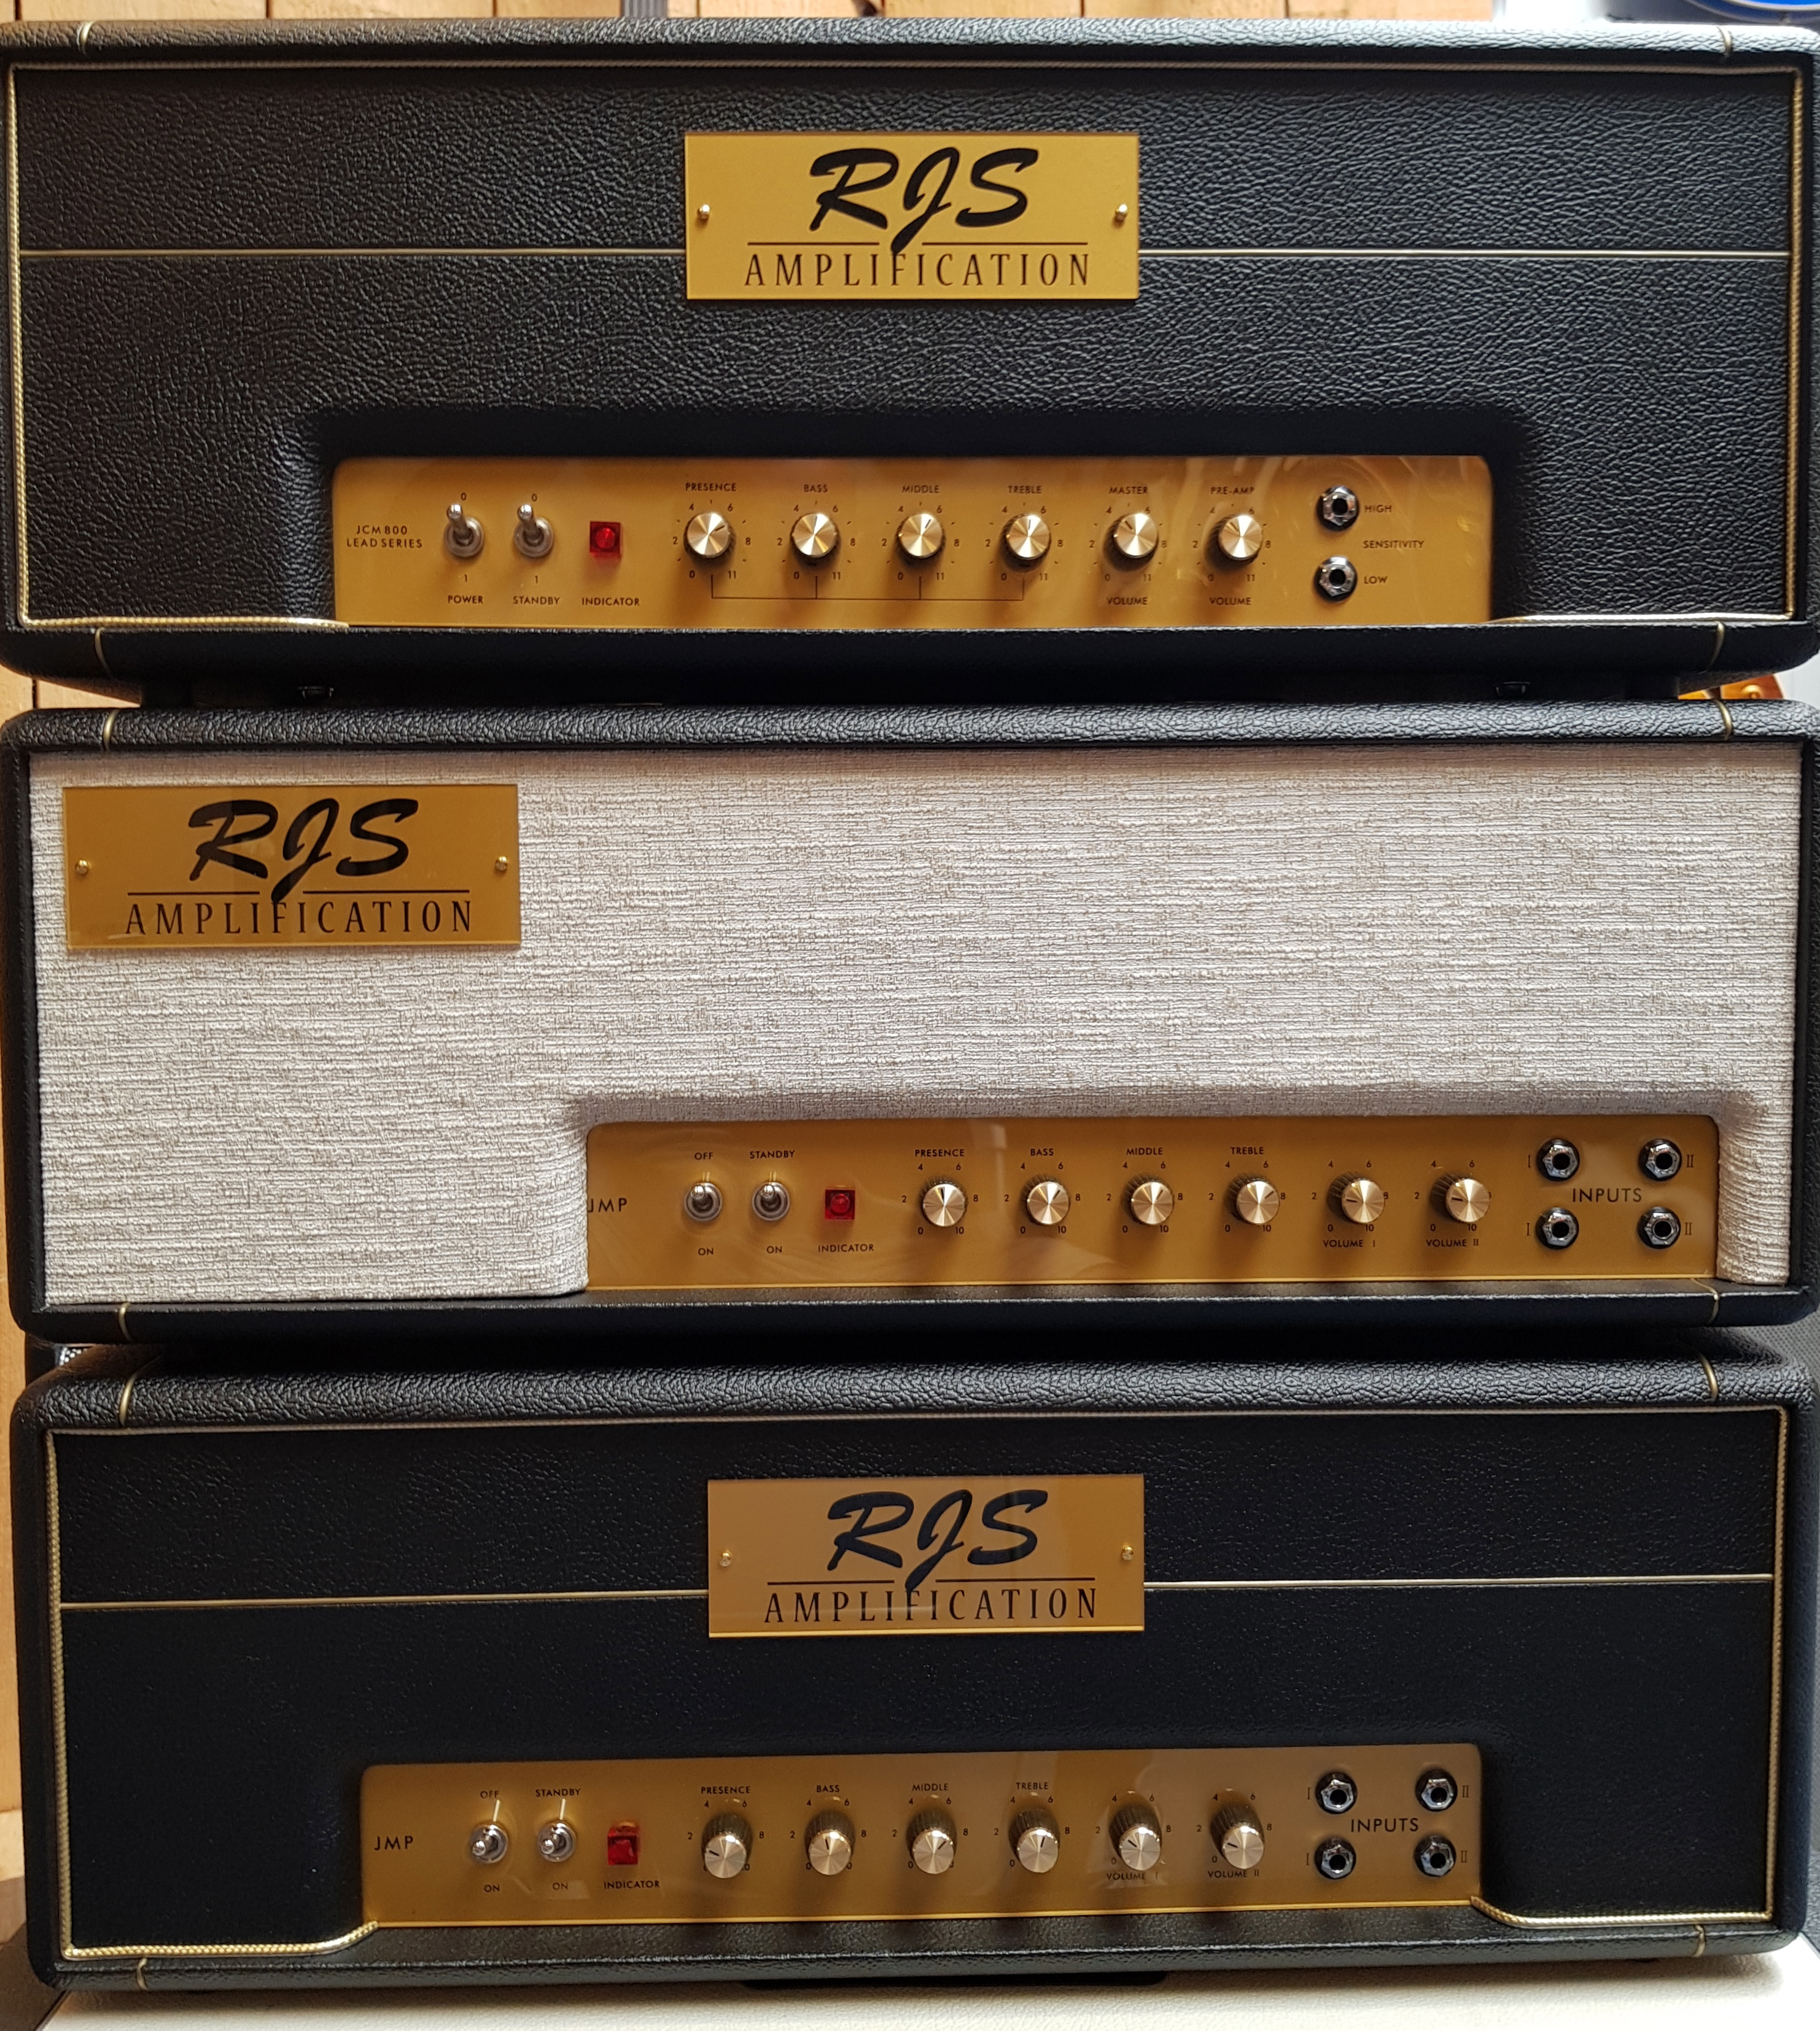 Haarguitars and parts RJS amplification - Haarguitars and parts